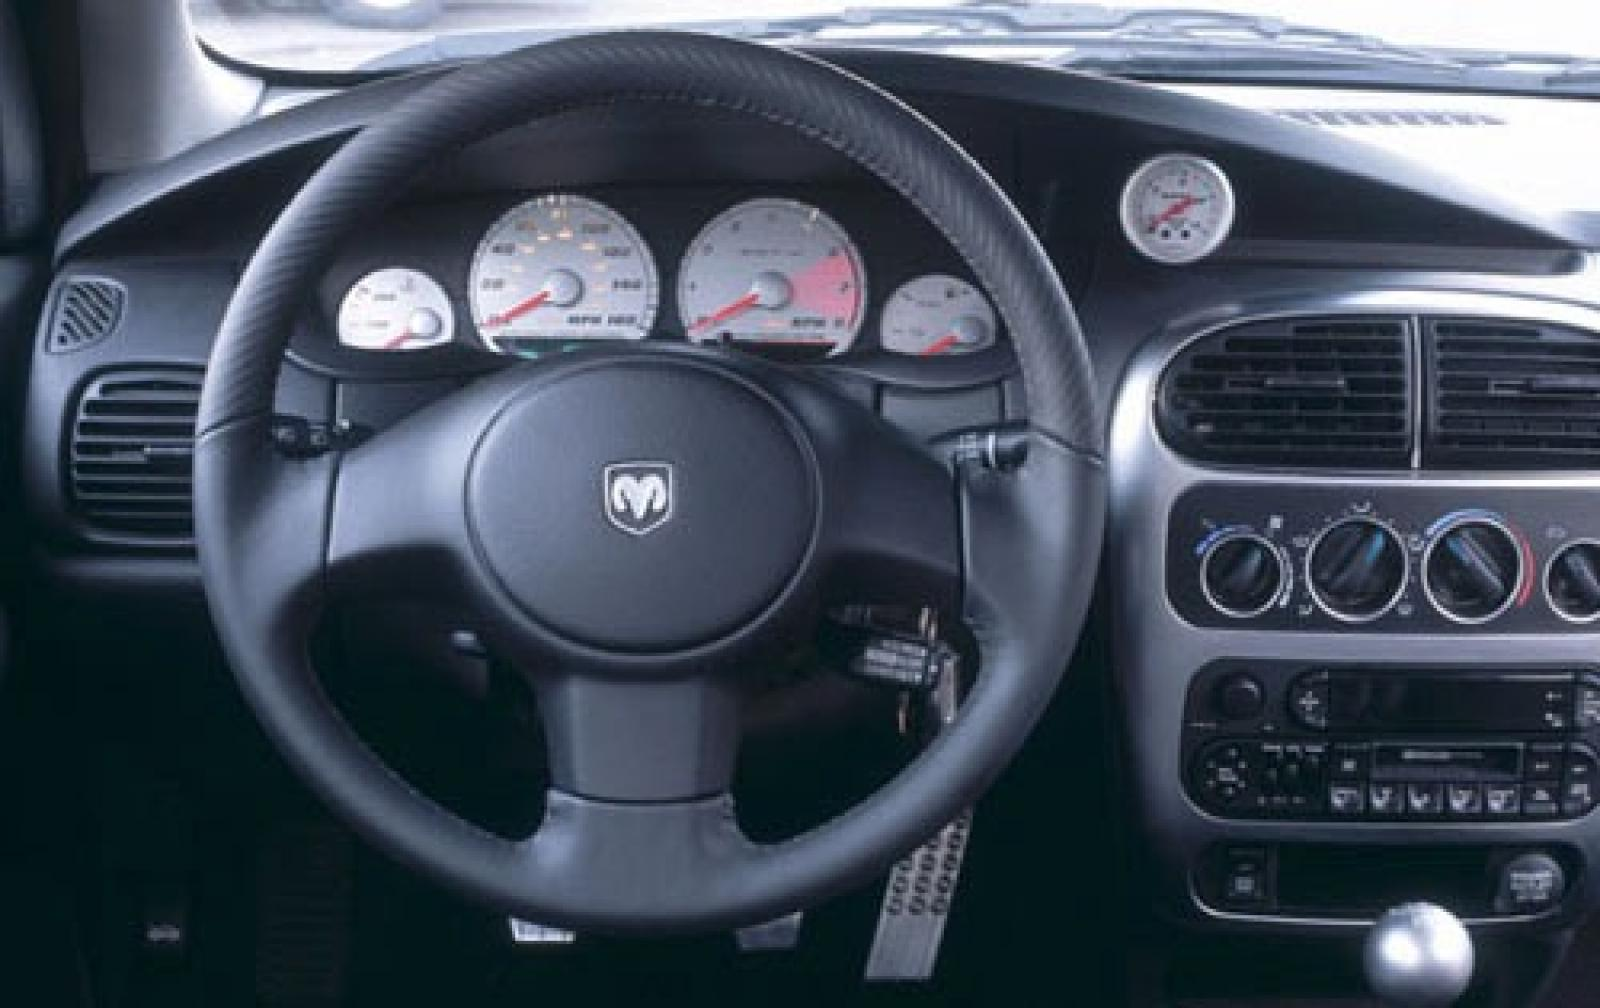 2005 dodge neon sxt review - new cars, used cars, car reviews and